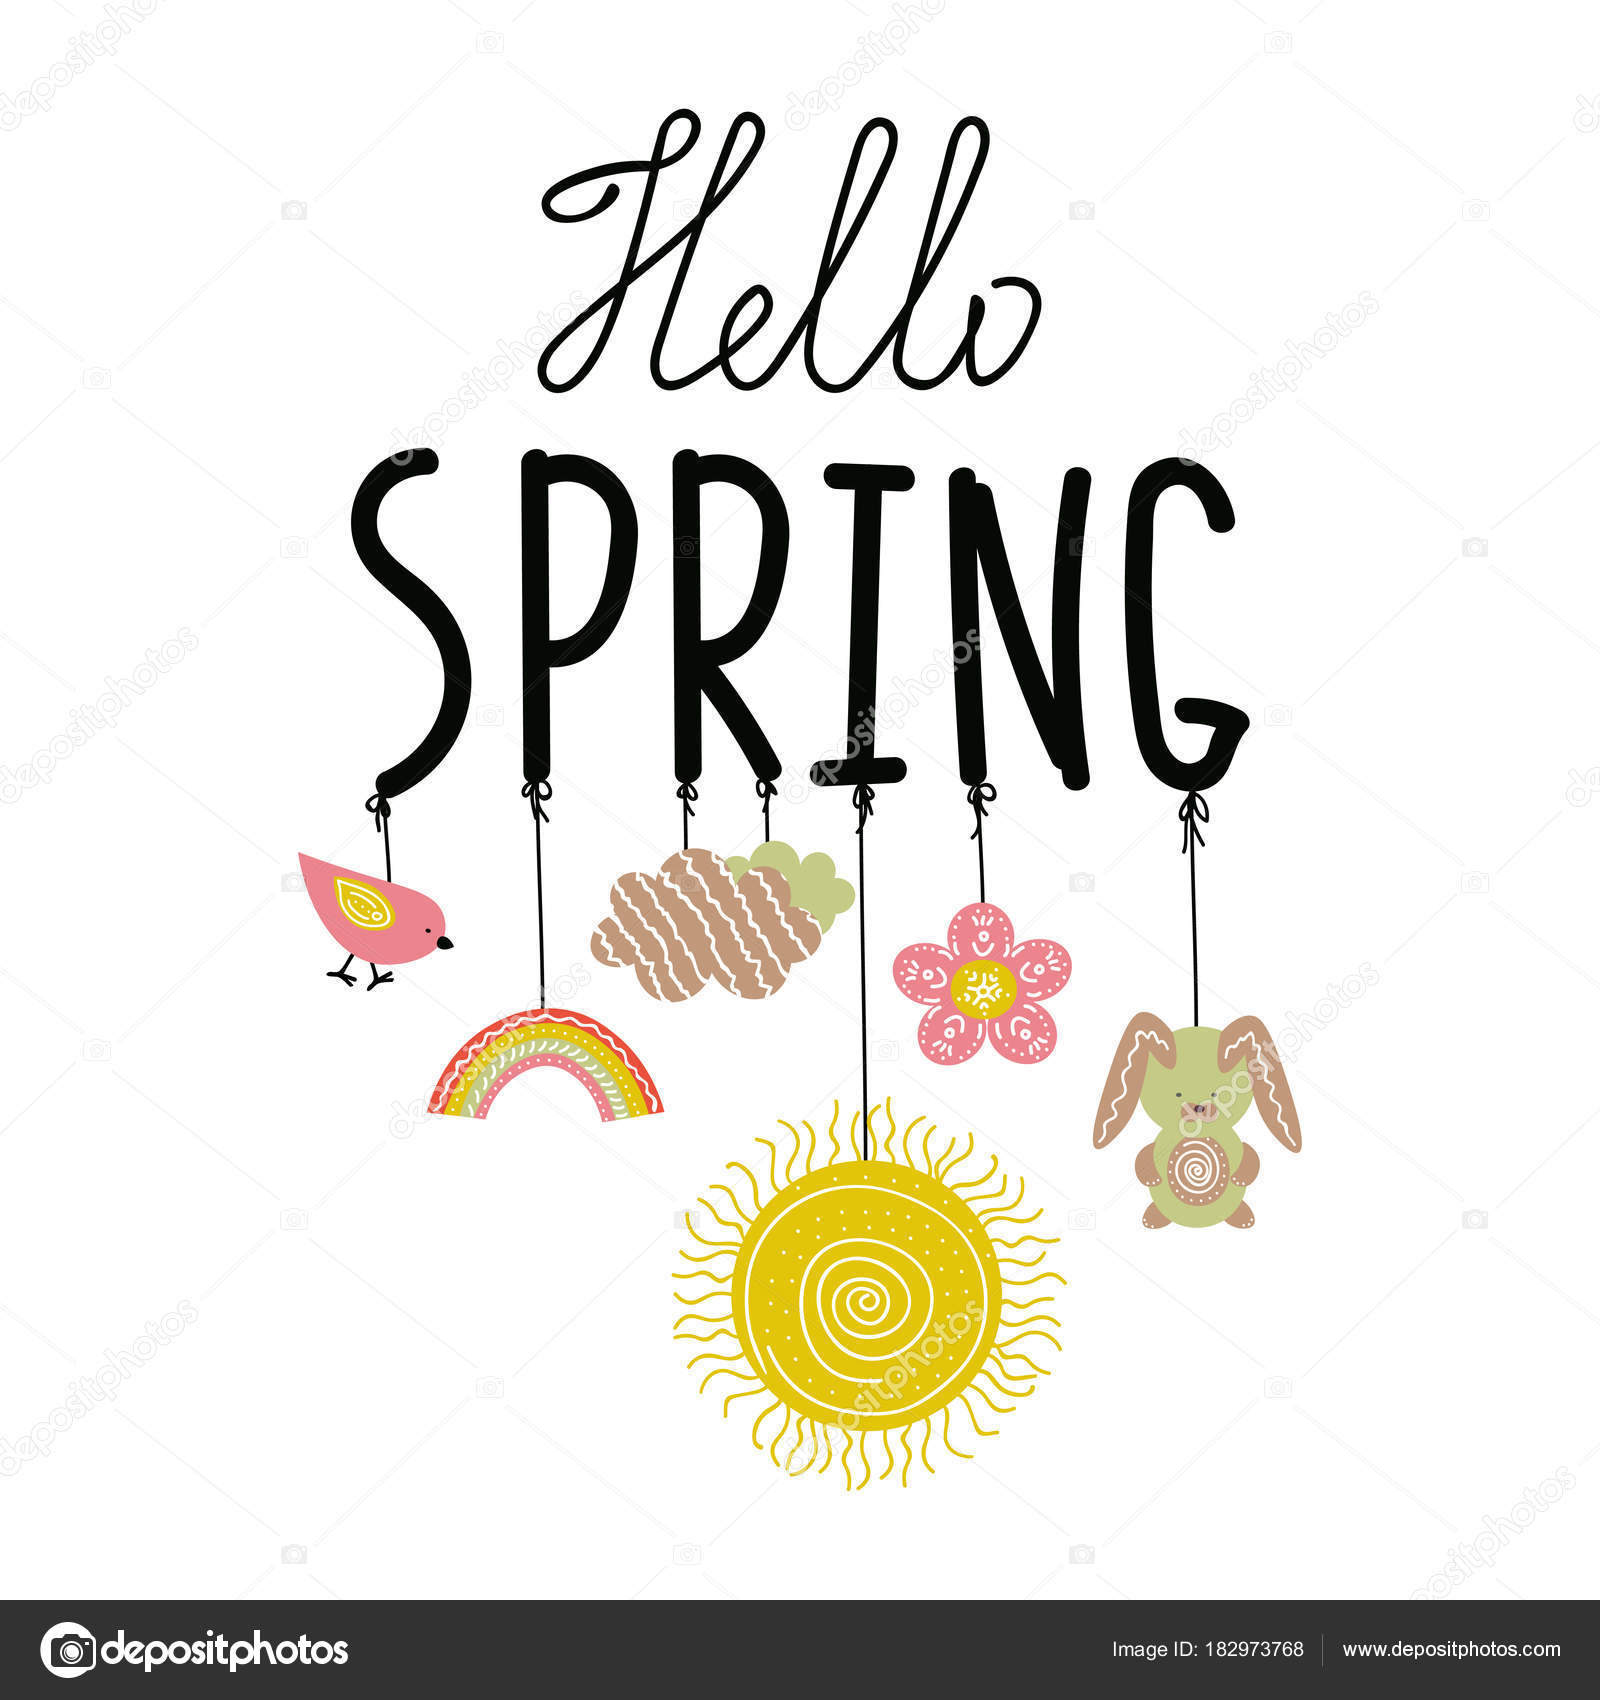 Hello spring handwritting phrase with ropes and doodle spring hello spring handwritting phrase with ropes and doodle spring symbols on it stock vector biocorpaavc